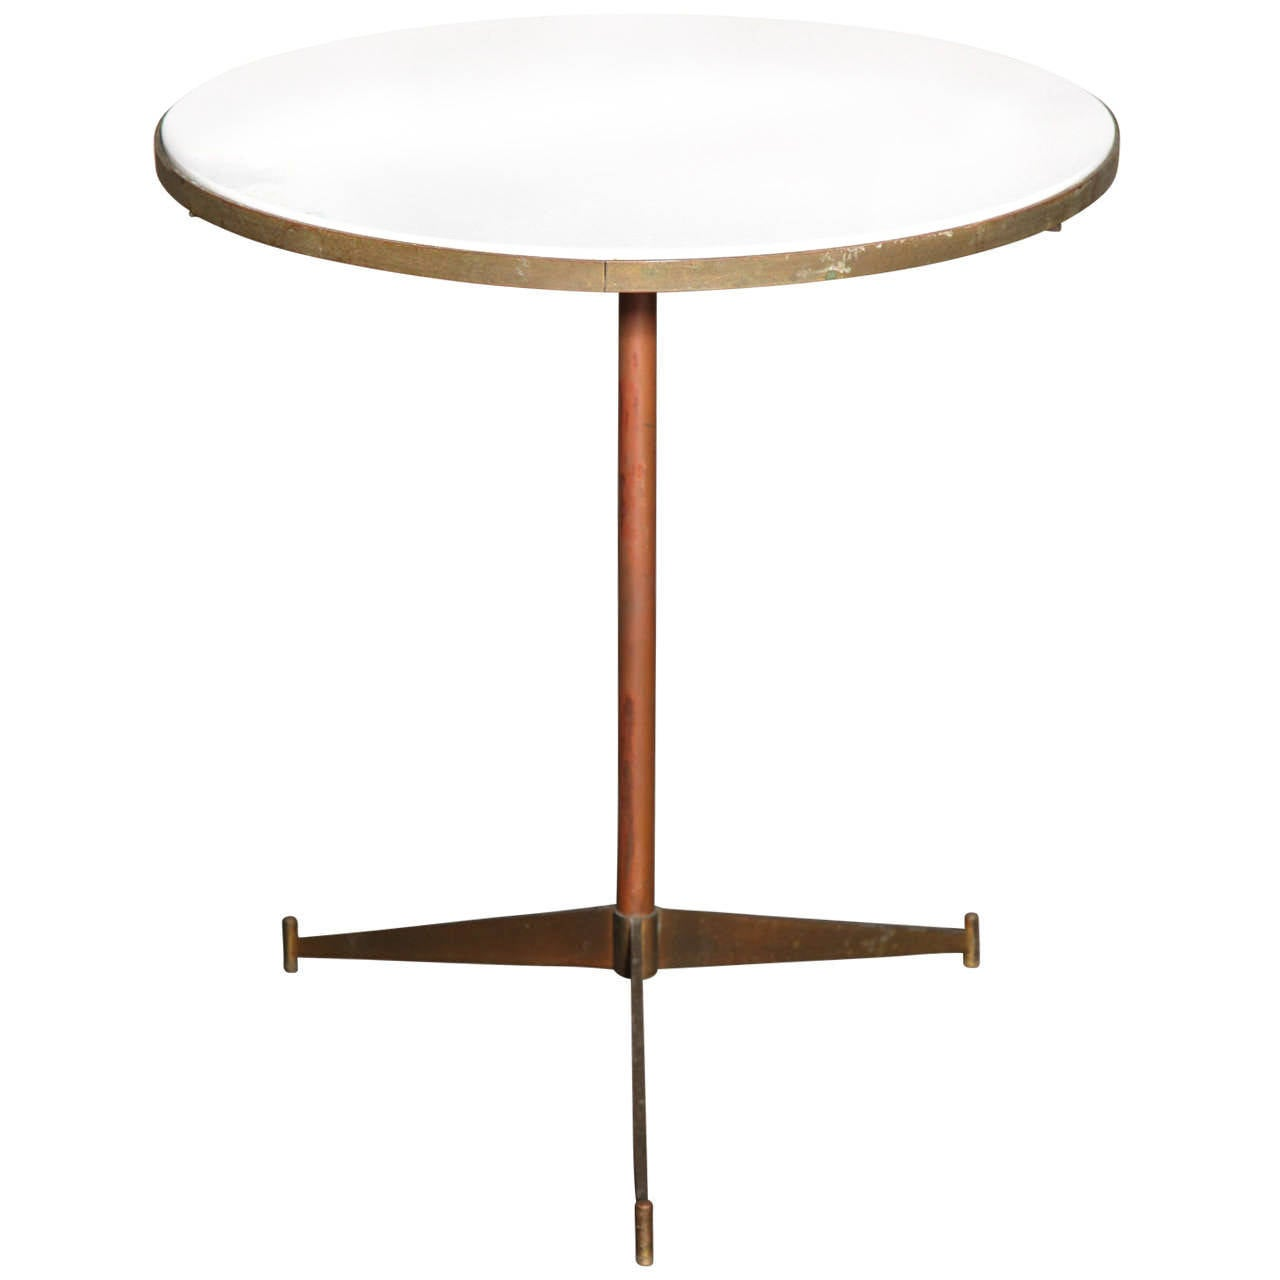 Paul McCobb Cigarette Table